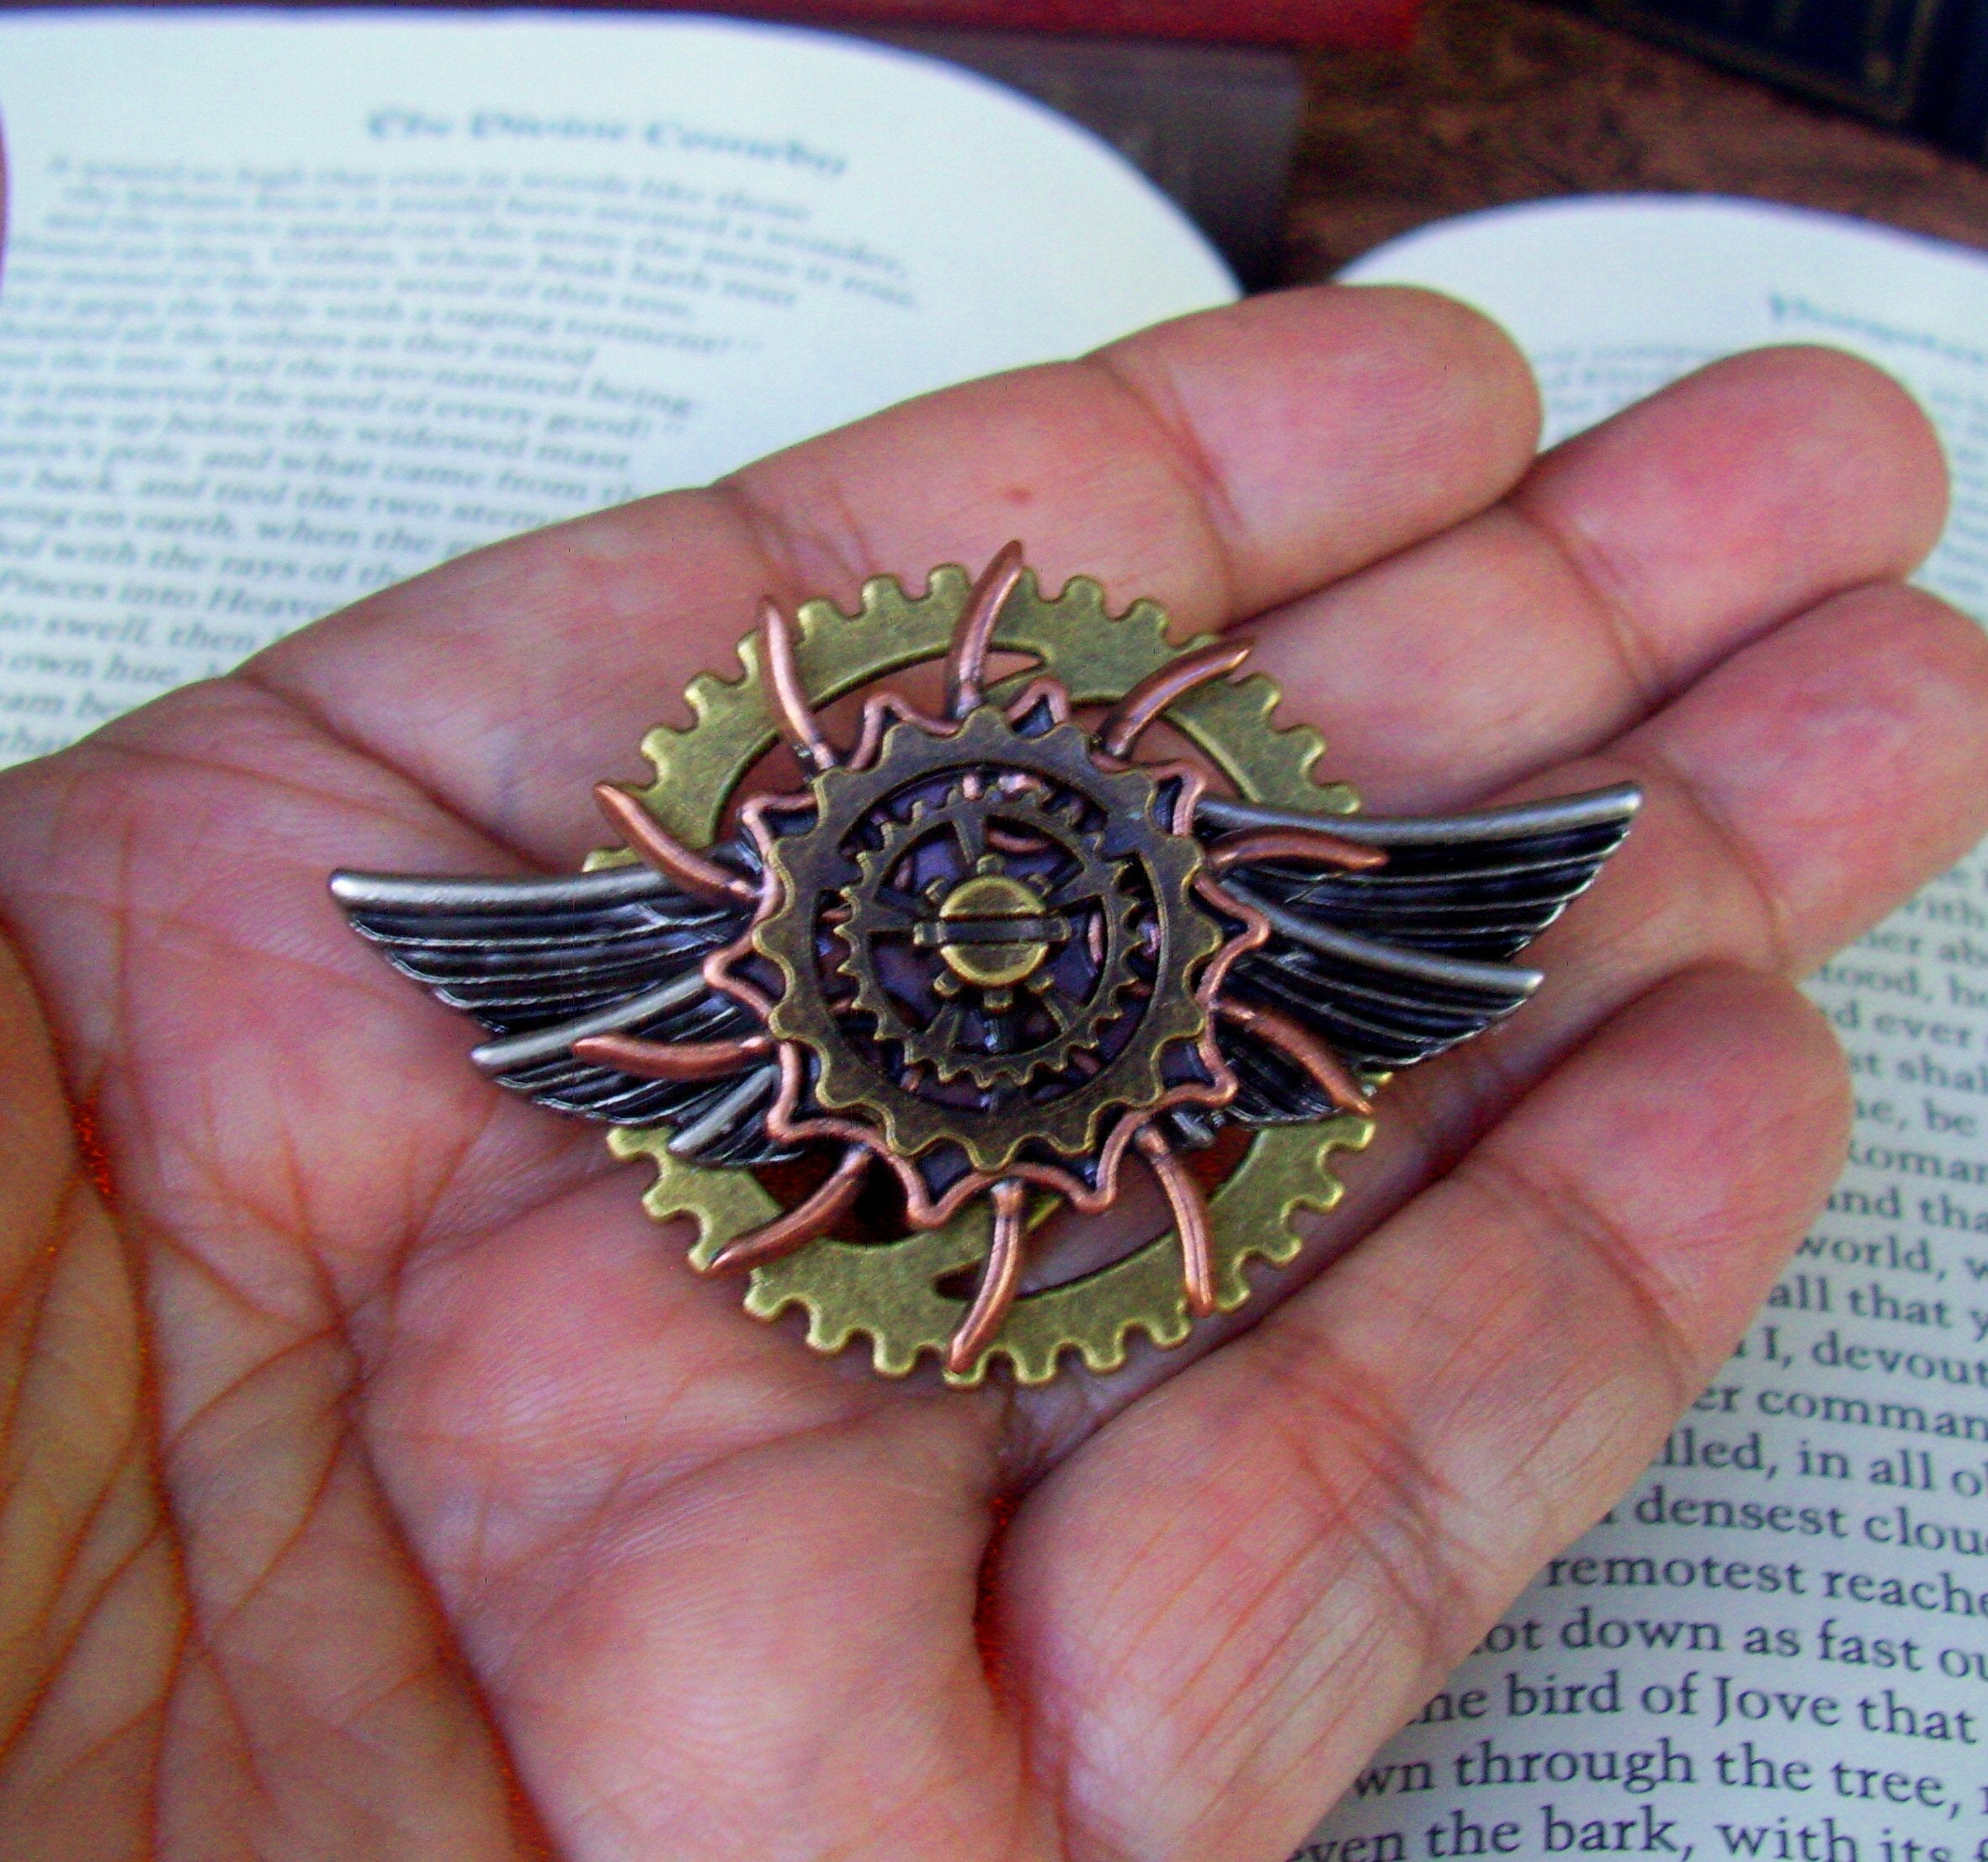 Brass Wings and Clockface Aviation Medal P753 Steampunk Aviator Pin BEST SELLER Tie Tack Backing Propeller and Gears